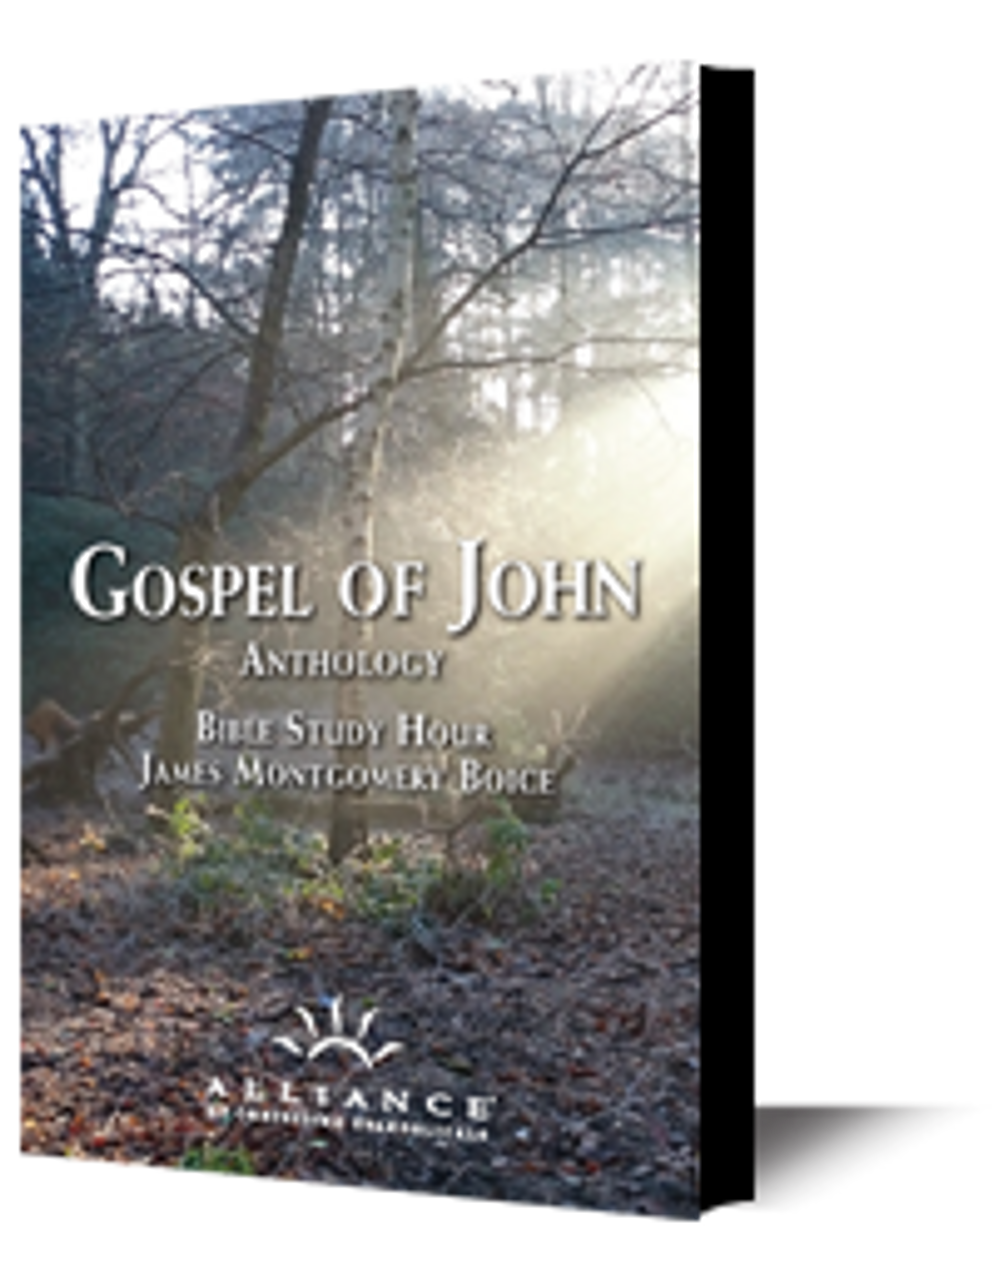 Free Offer of the Gospel (mp3 download)